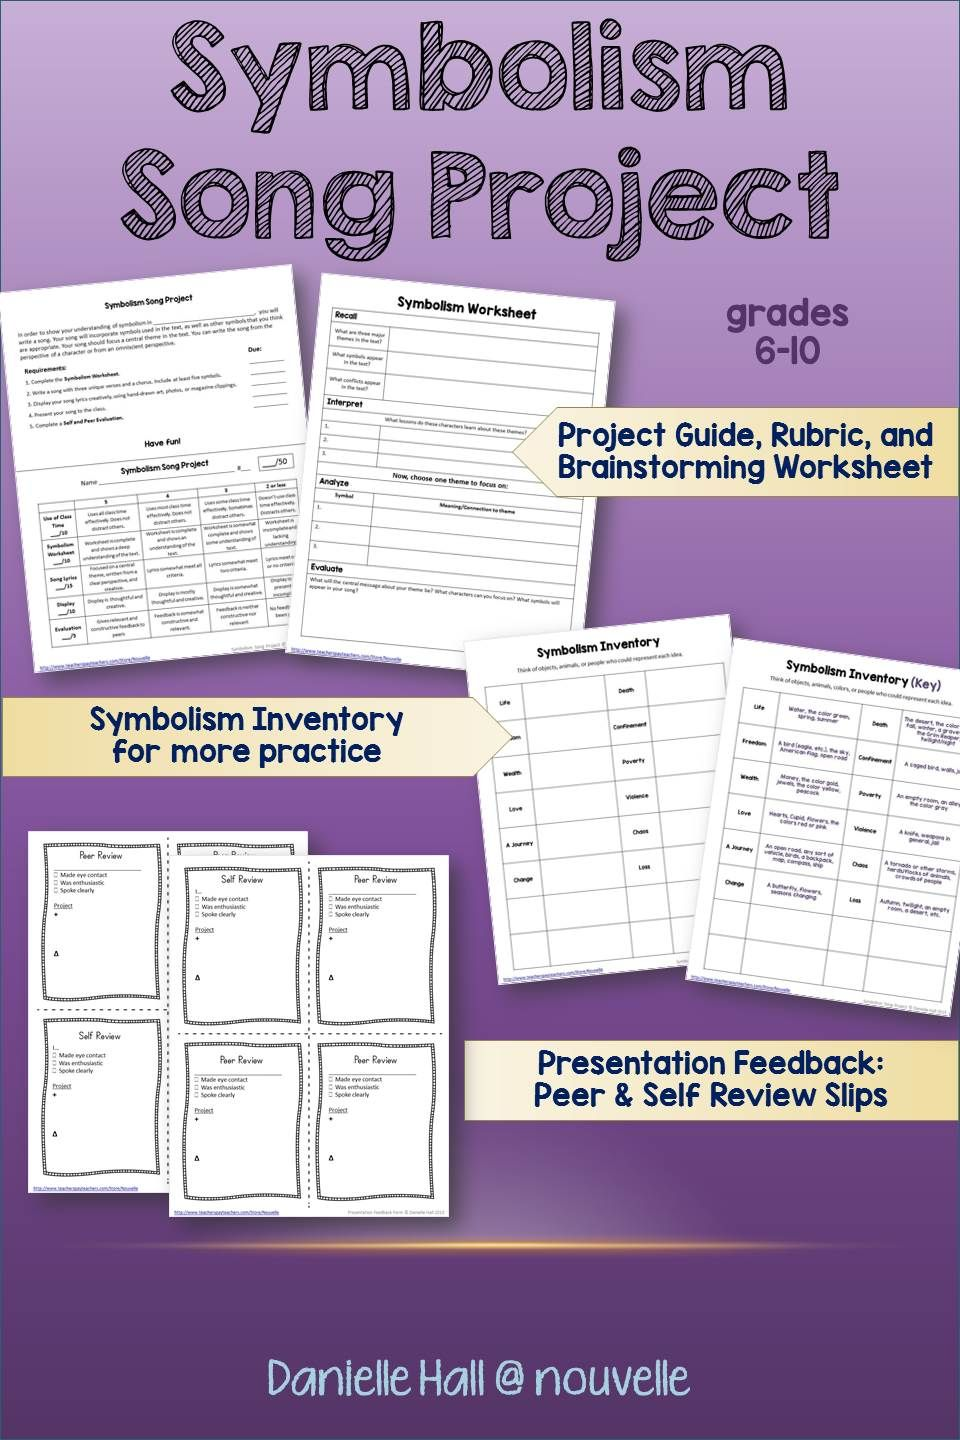 Worksheets Symbolism Worksheets symbolism song project free lessons priced the best of students practice by writing a includes worksheets feedback forms guidelines and rubric f